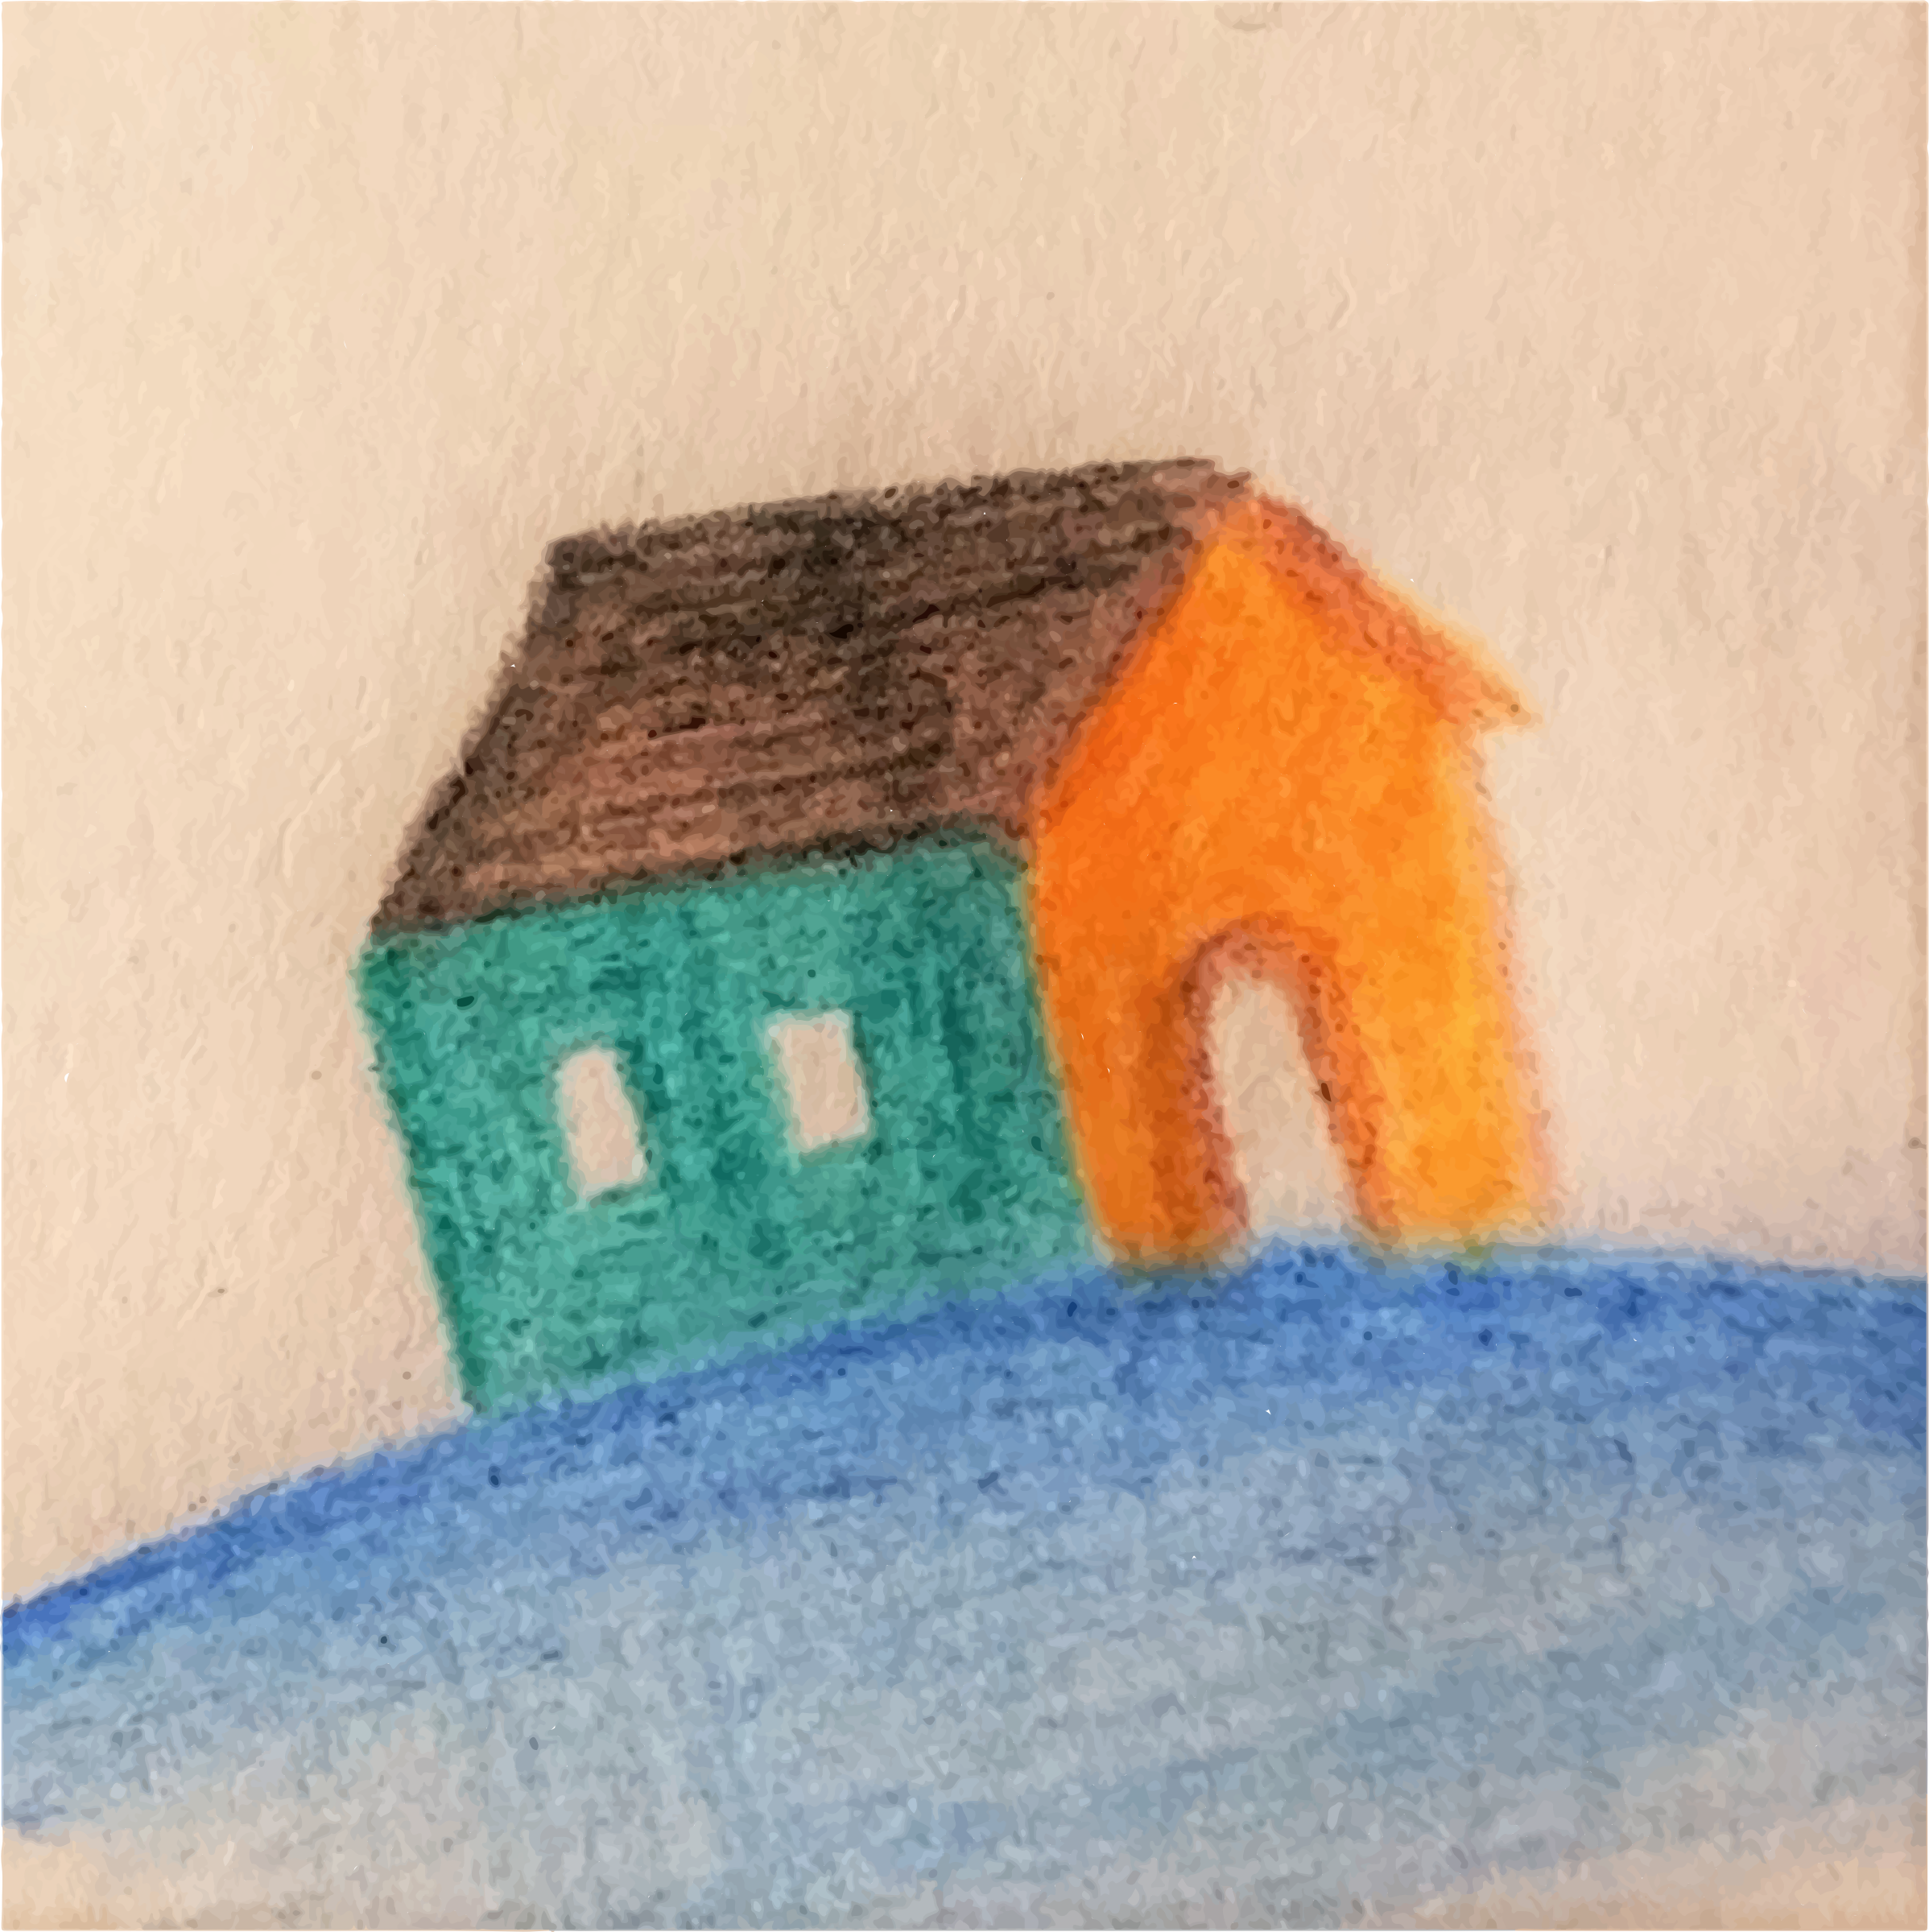 Painted Home (Vectorized) by GDJ